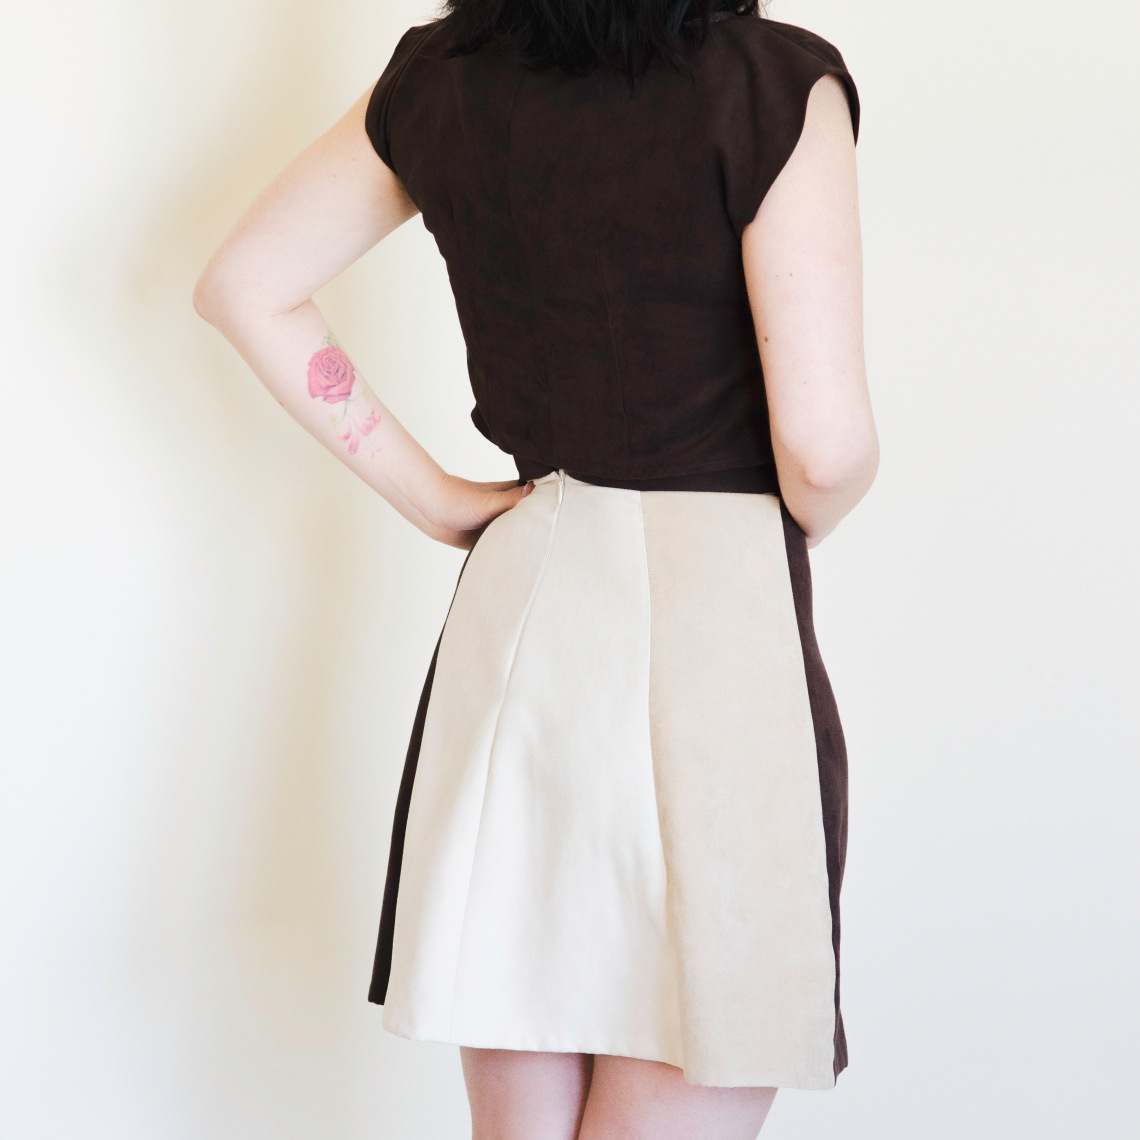 vegan-suede-skirt-top-07